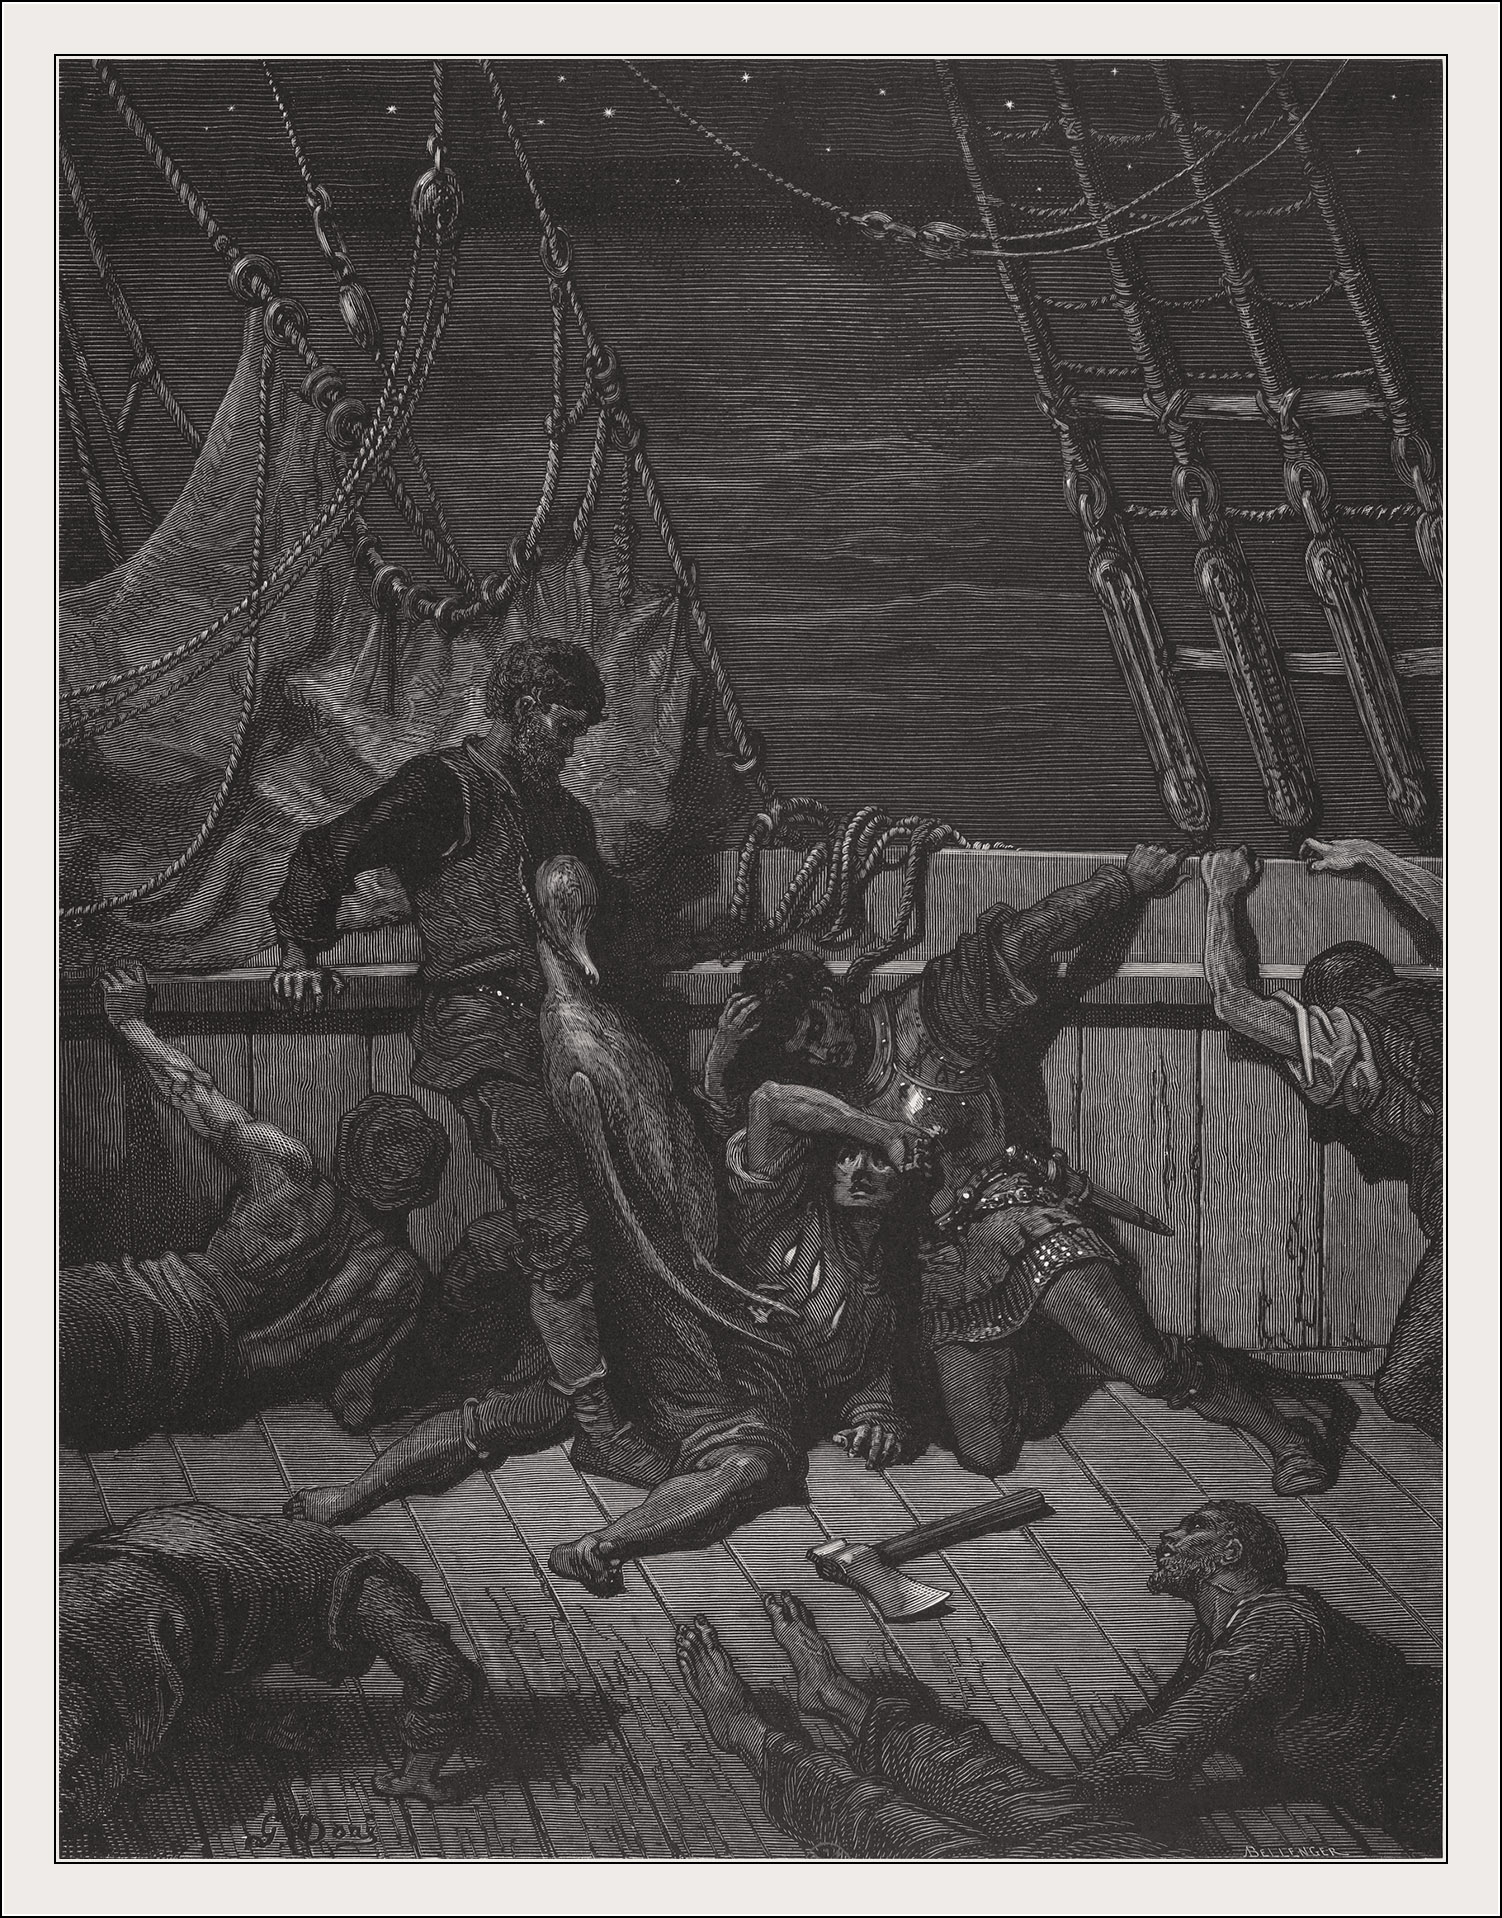 Gustave Doré, Rime of the ancient mariner